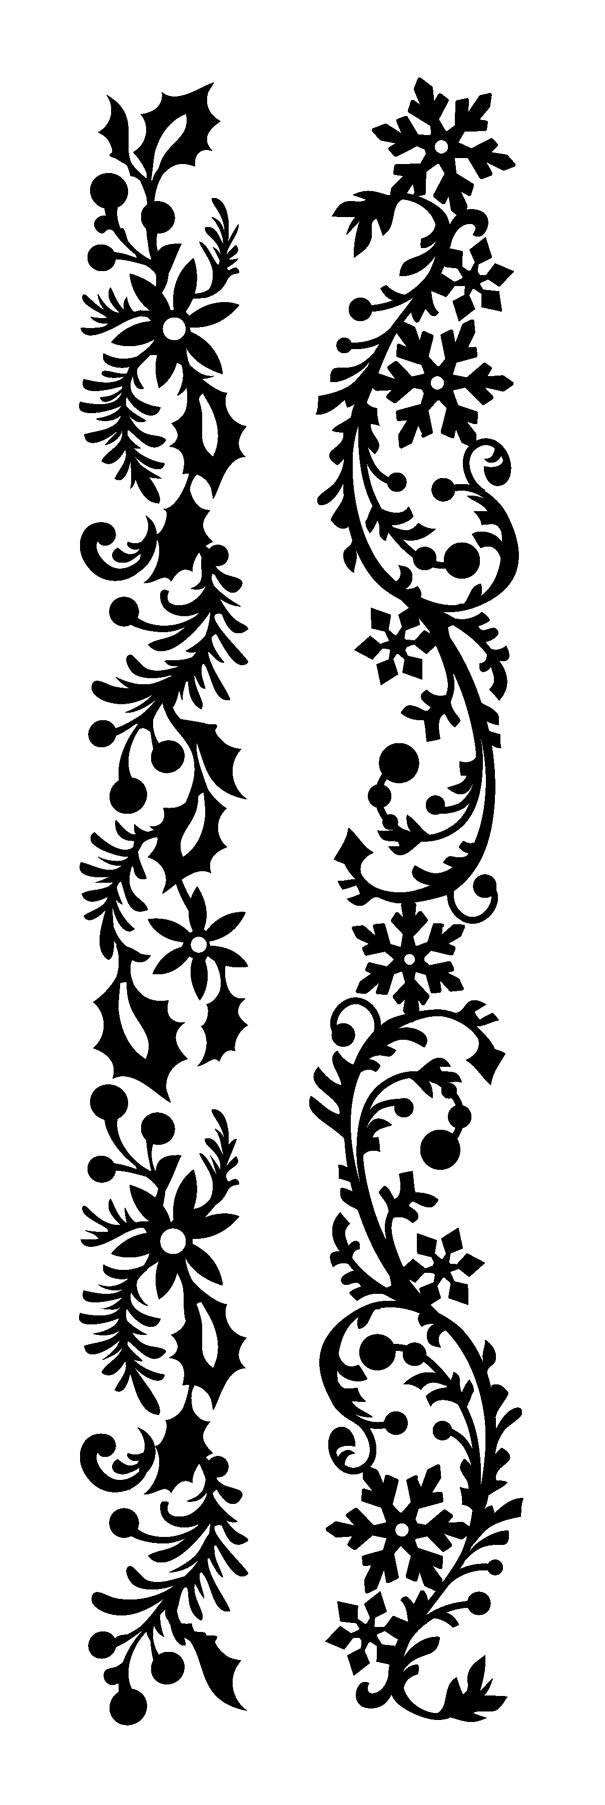 Holly garland. Snowflake garland. Silhouette for cutting machines.